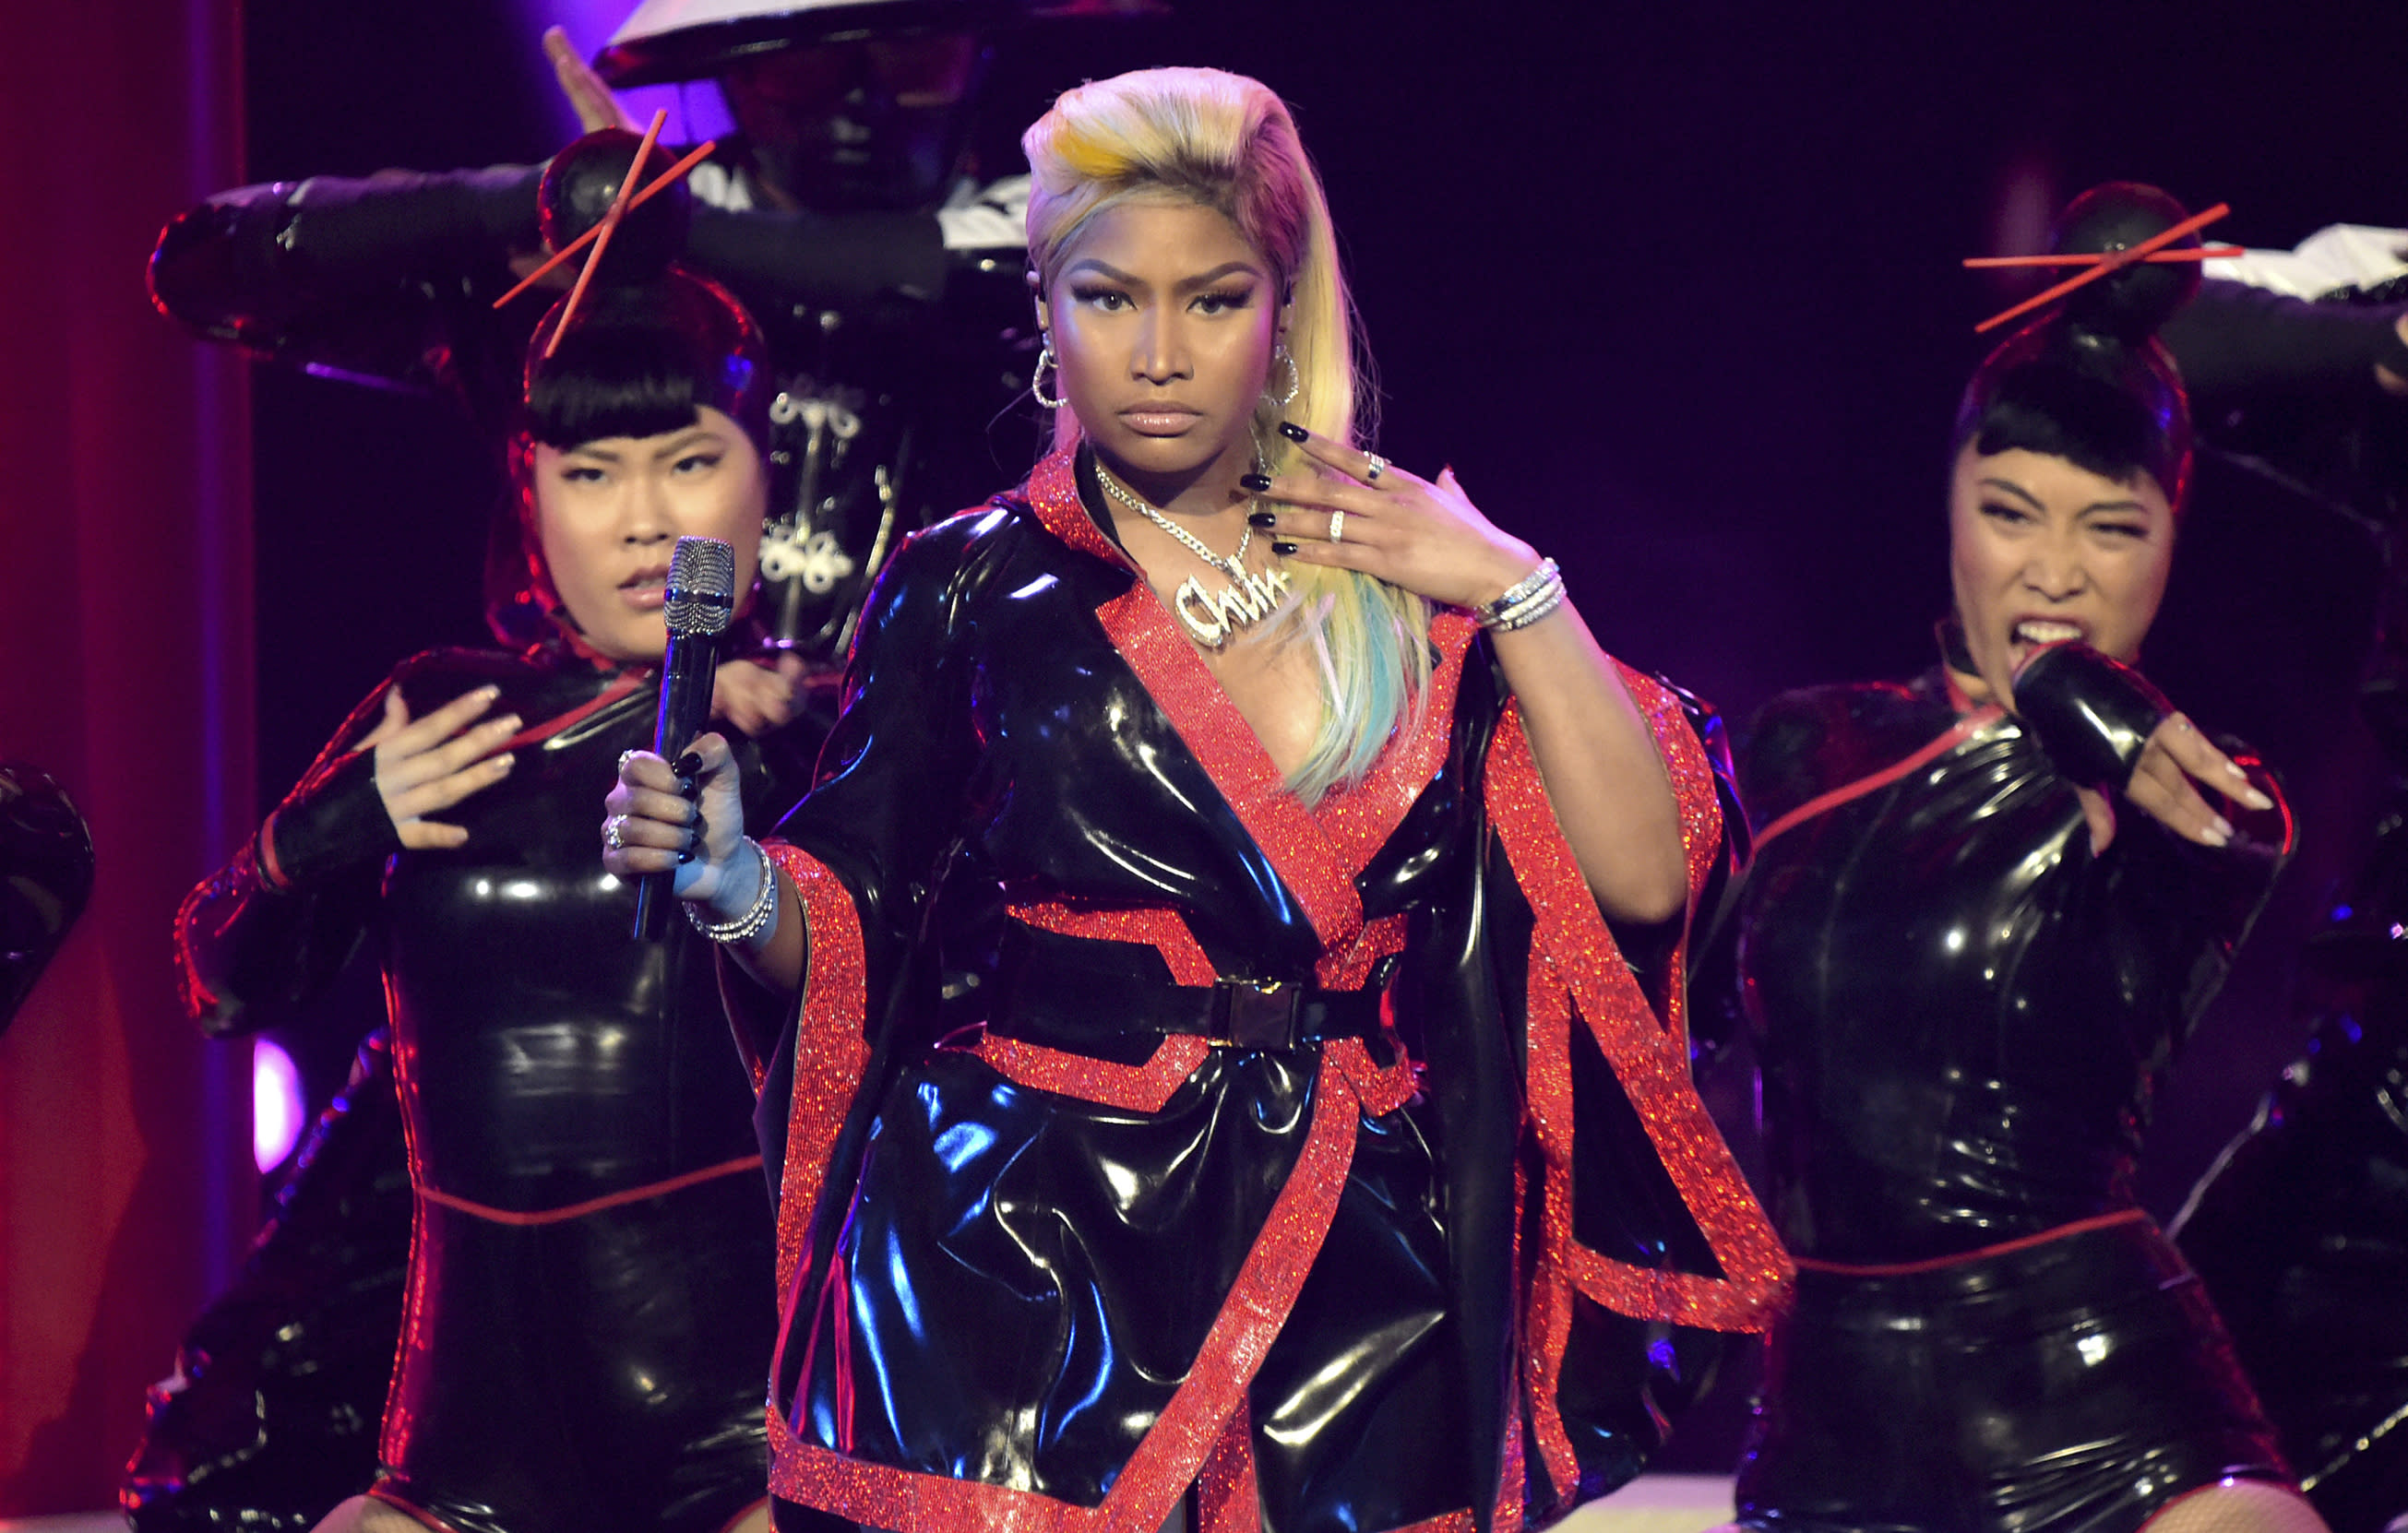 Nicki Minaj pulls out of Saudi Arabia gig over human rights